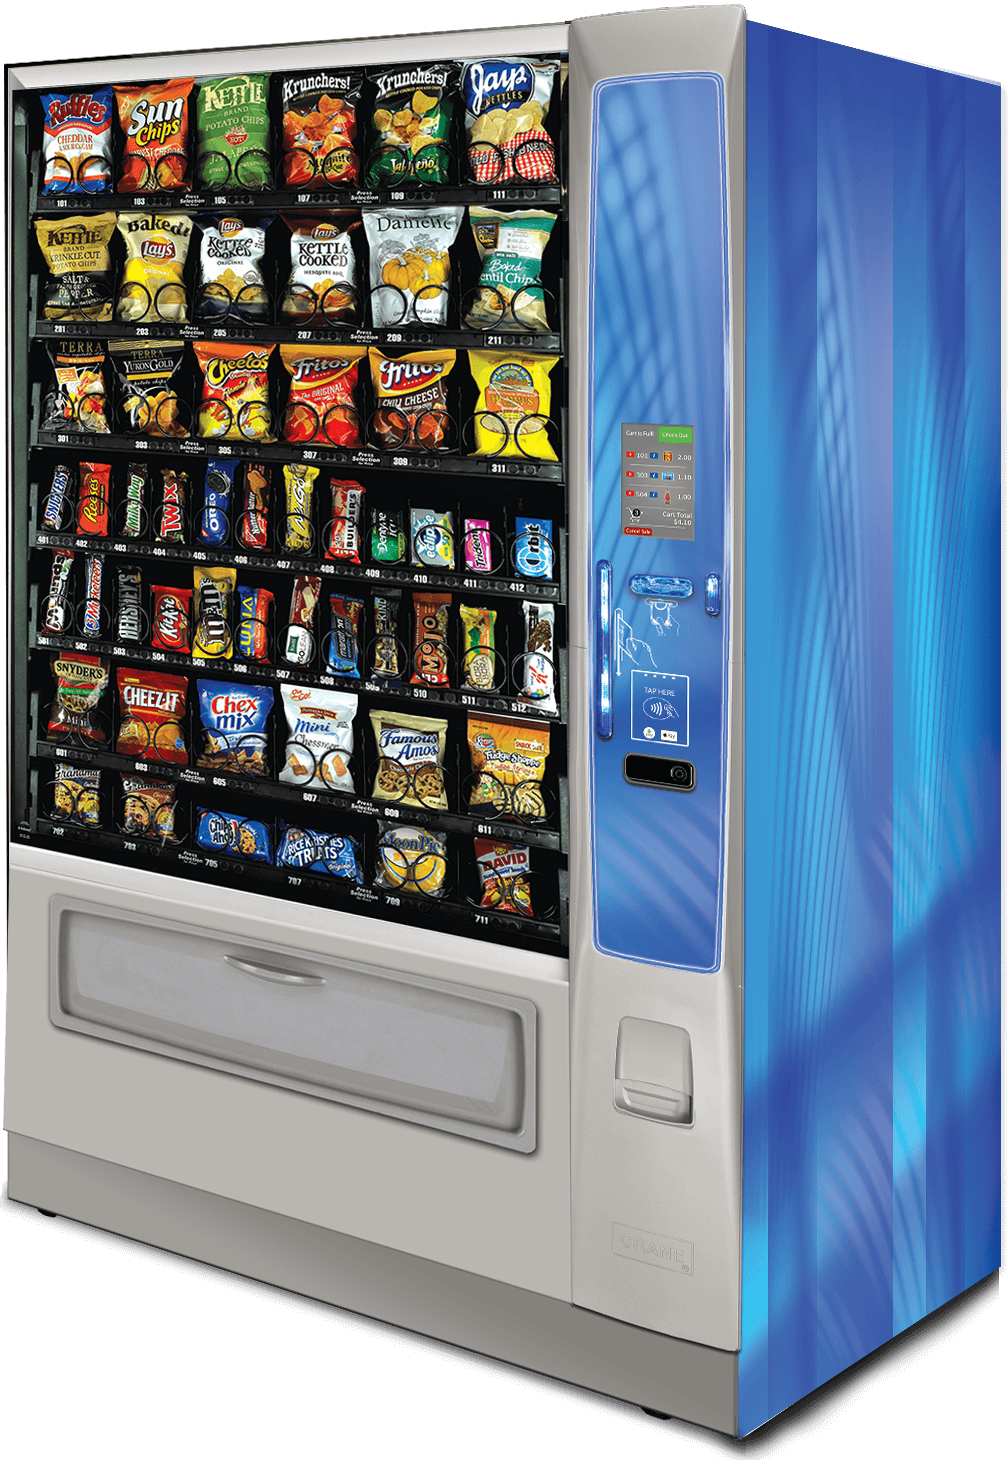 Snacks Vending Machine Image